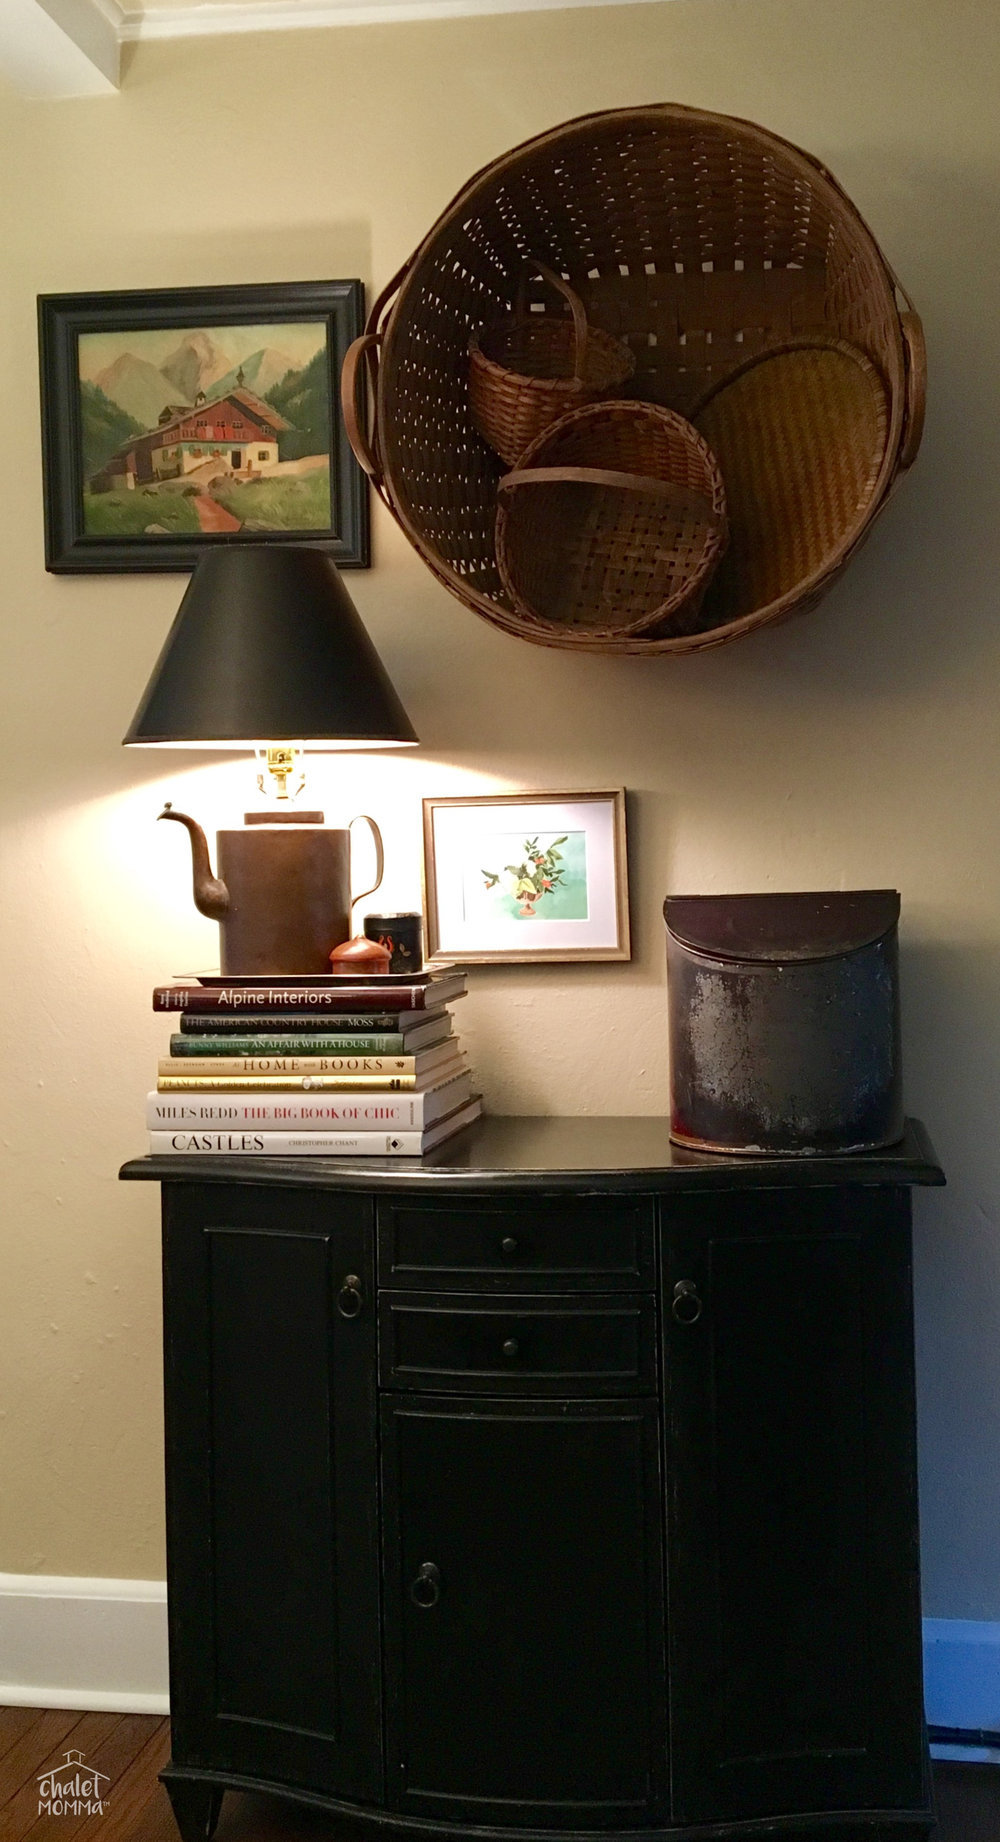 baskets in diningroom.jpg